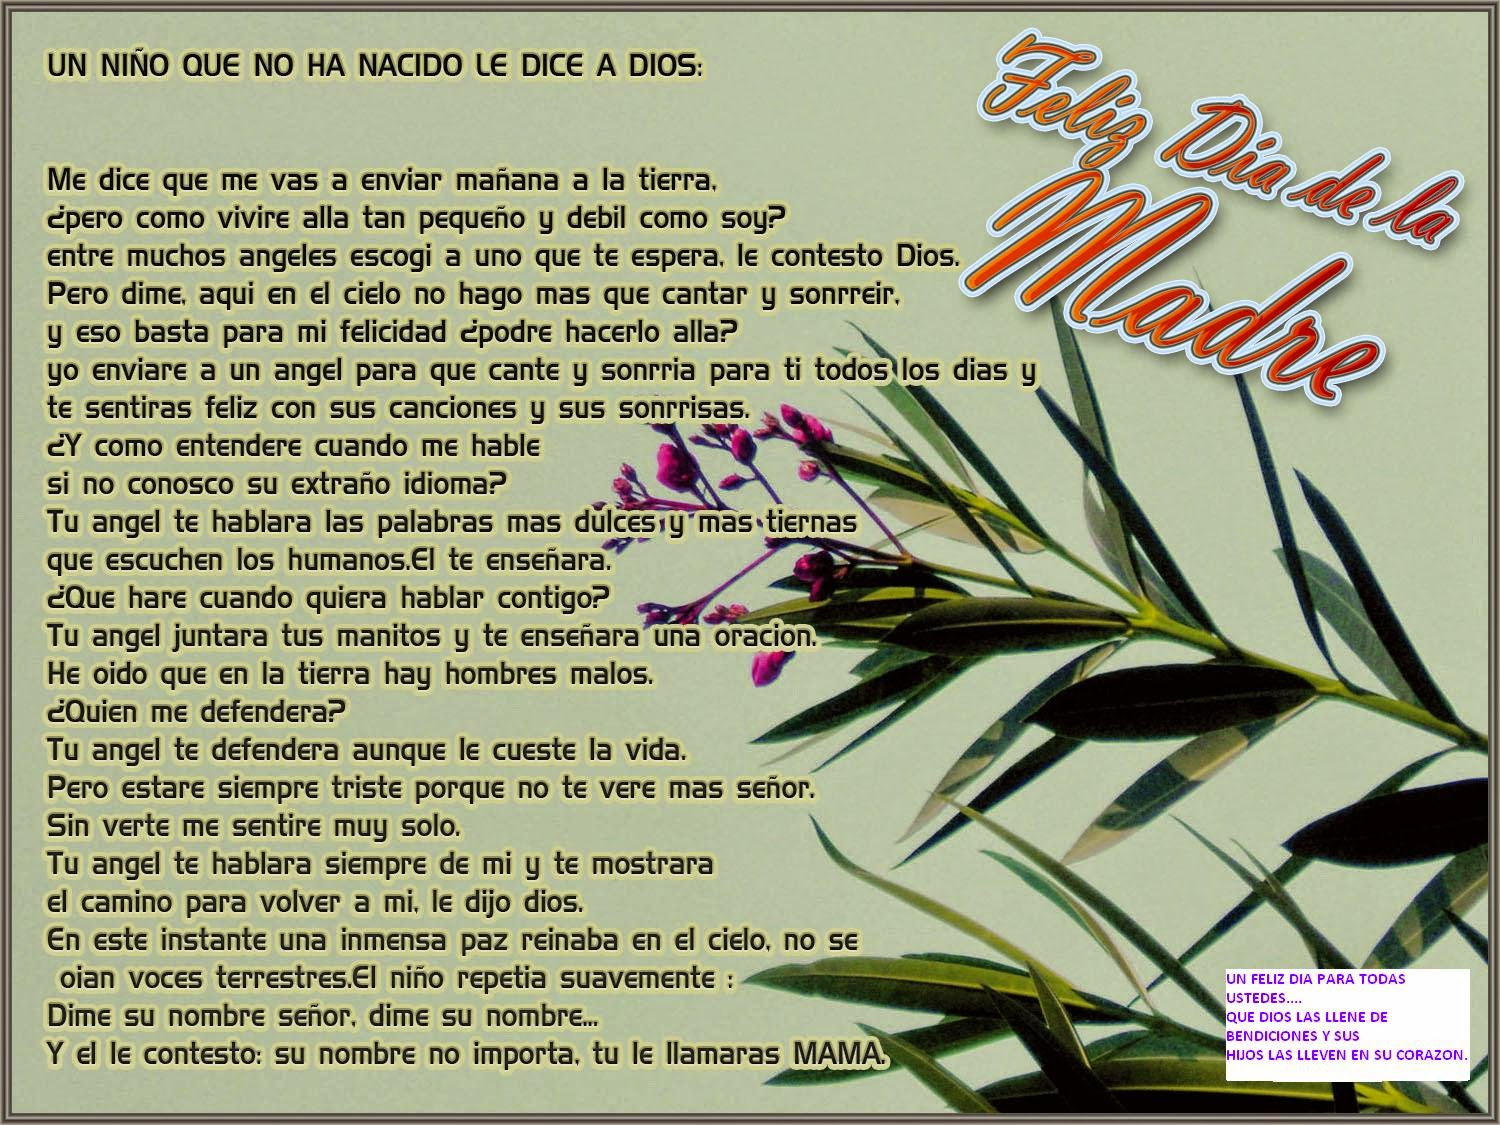 Quotes About Friendship In Spanish Mothers Day Quotes In Spanish For A Friend I Love You Mom Poems